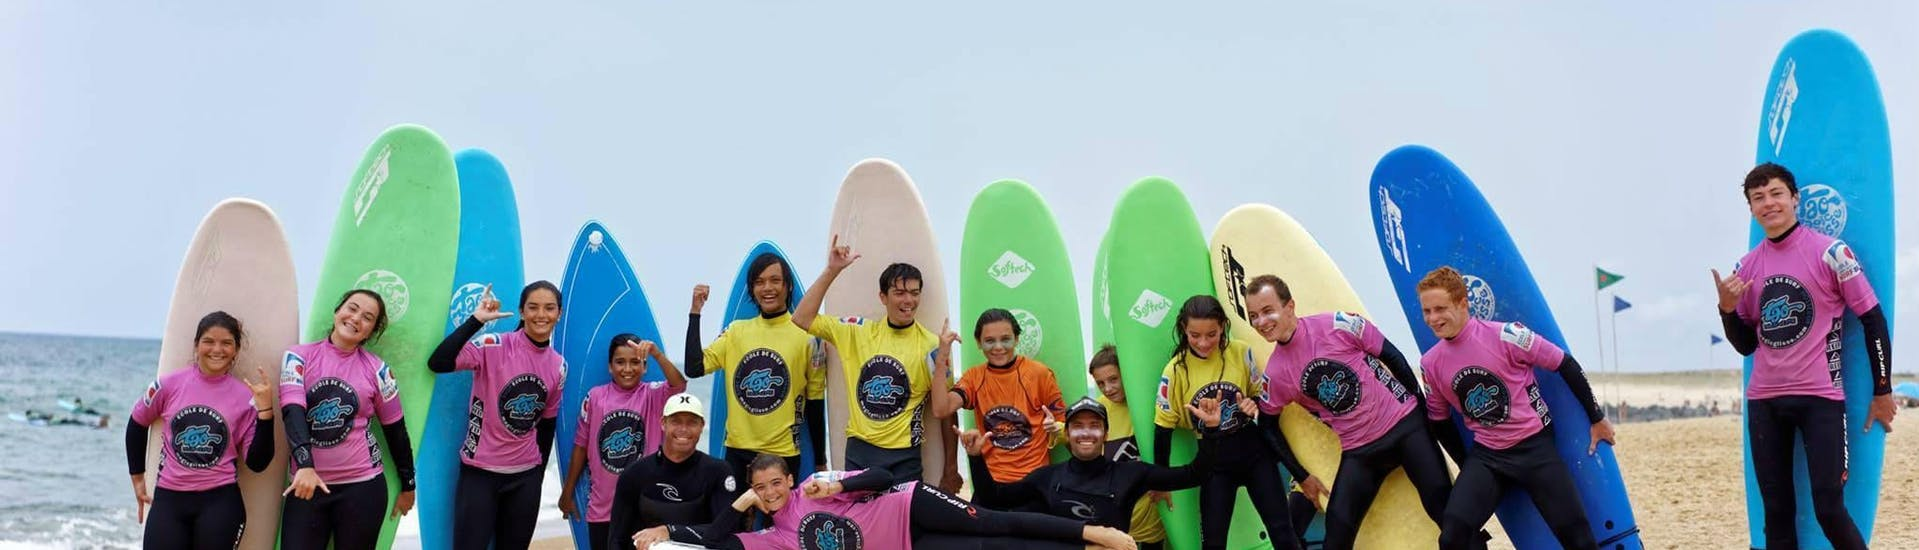 Children are having Surfing Lessons on the Plage Sud in Hossegor in Low Season with their instructor from Tao Magic Glisse.